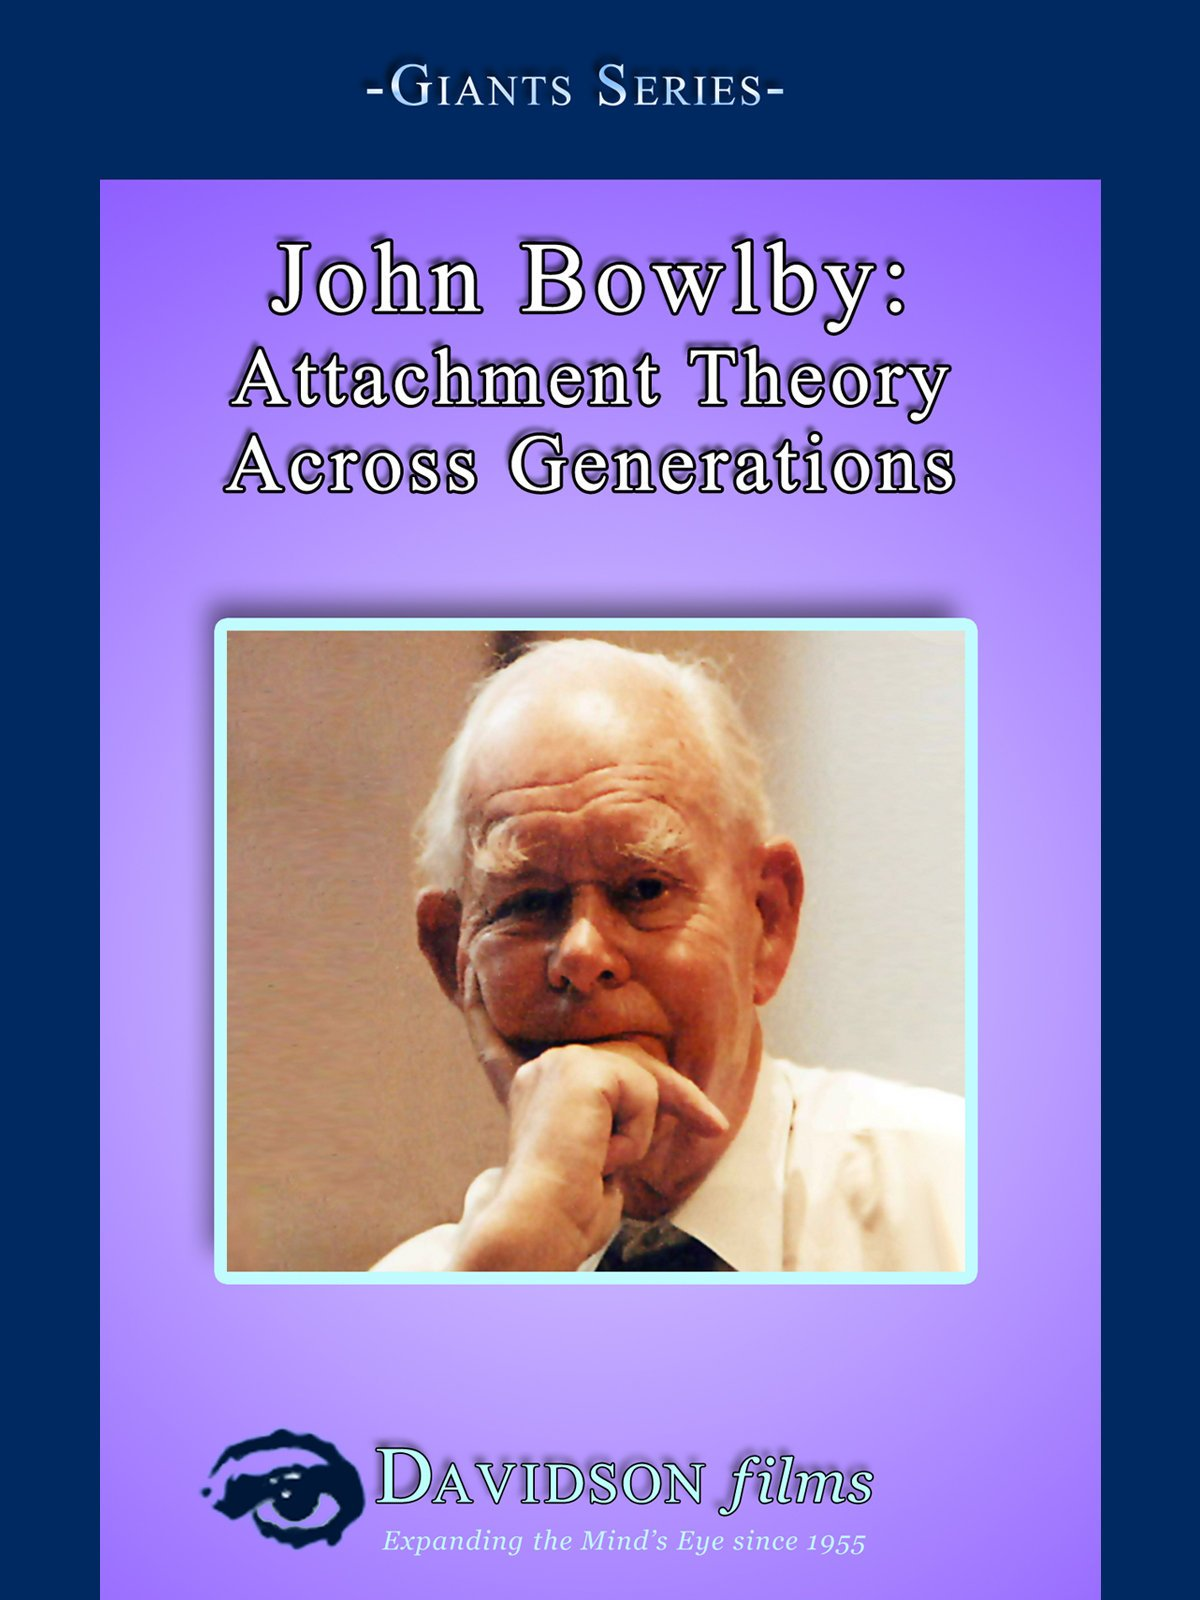 Amazon john bowlby attachment theory across generations amazon john bowlby attachment theory across generations davidson films inc amazon digital services llc fandeluxe Image collections